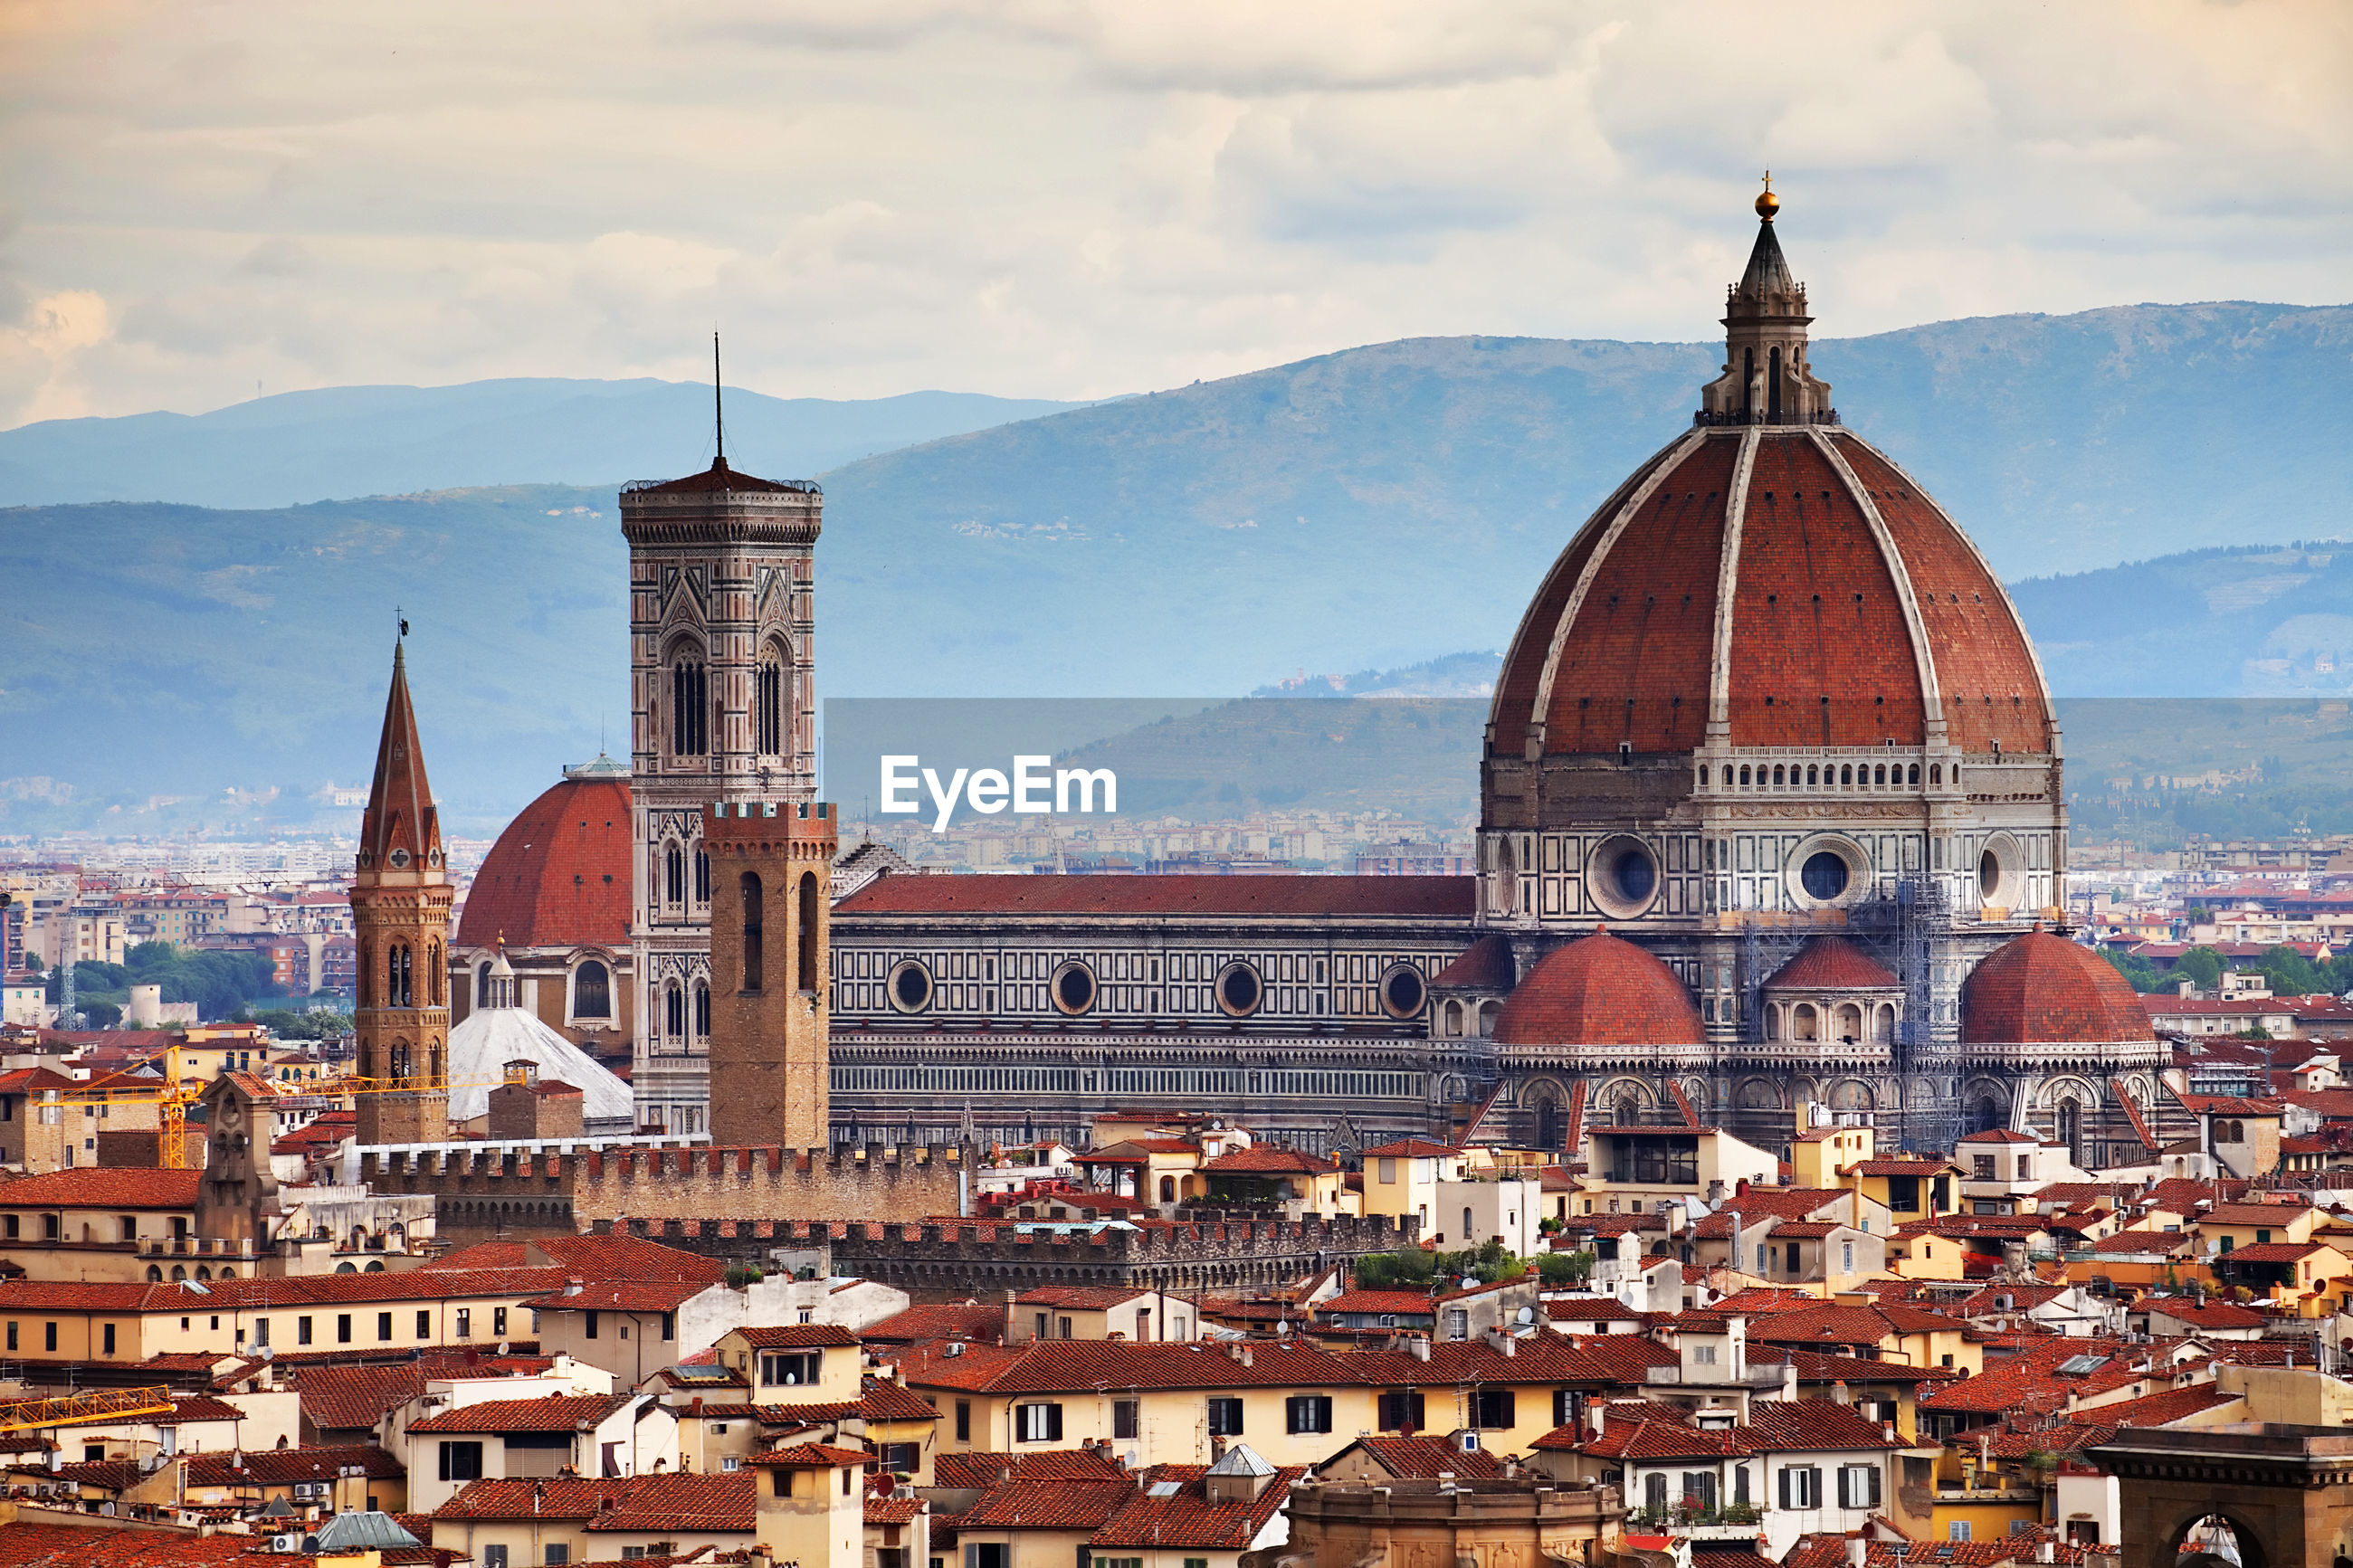 Dome of florence against cloudy sky